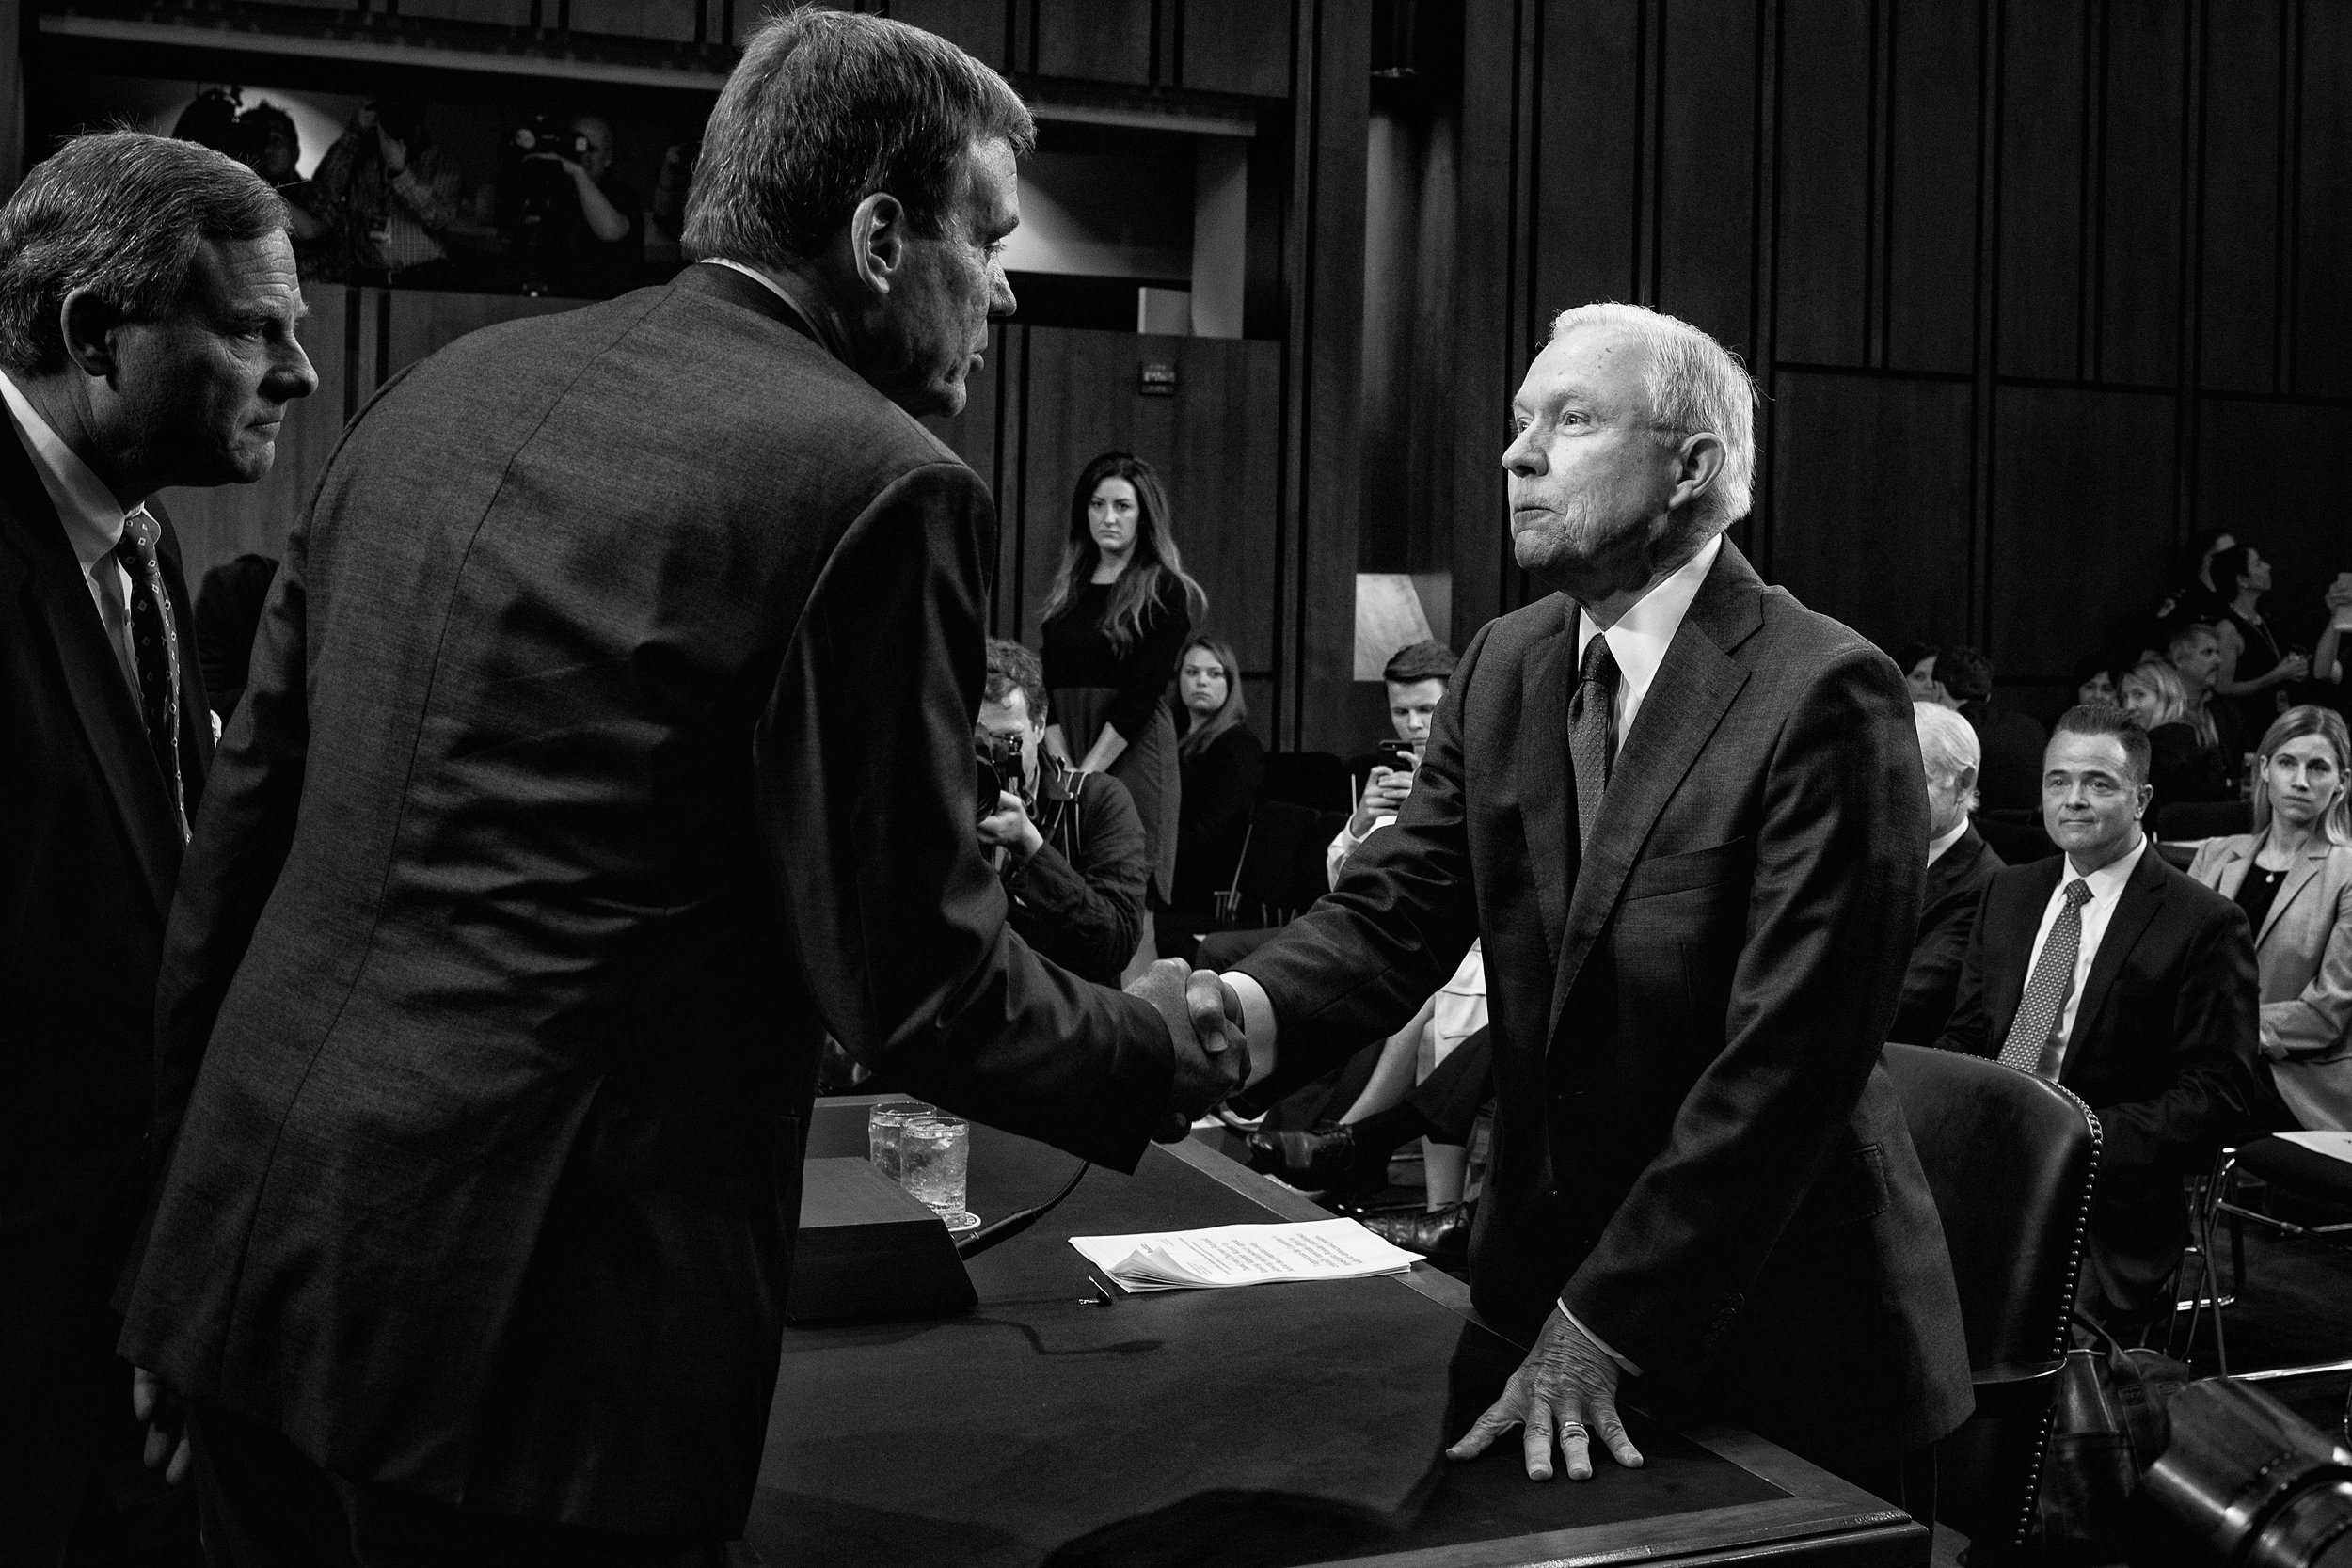 Day 145: Attorney General Jeff Sessions shakes hands with Senator Mark Warner before the Senate Intelligence Committee at the Hart Senate Office Building in Washington, DC on June 13, 2017.